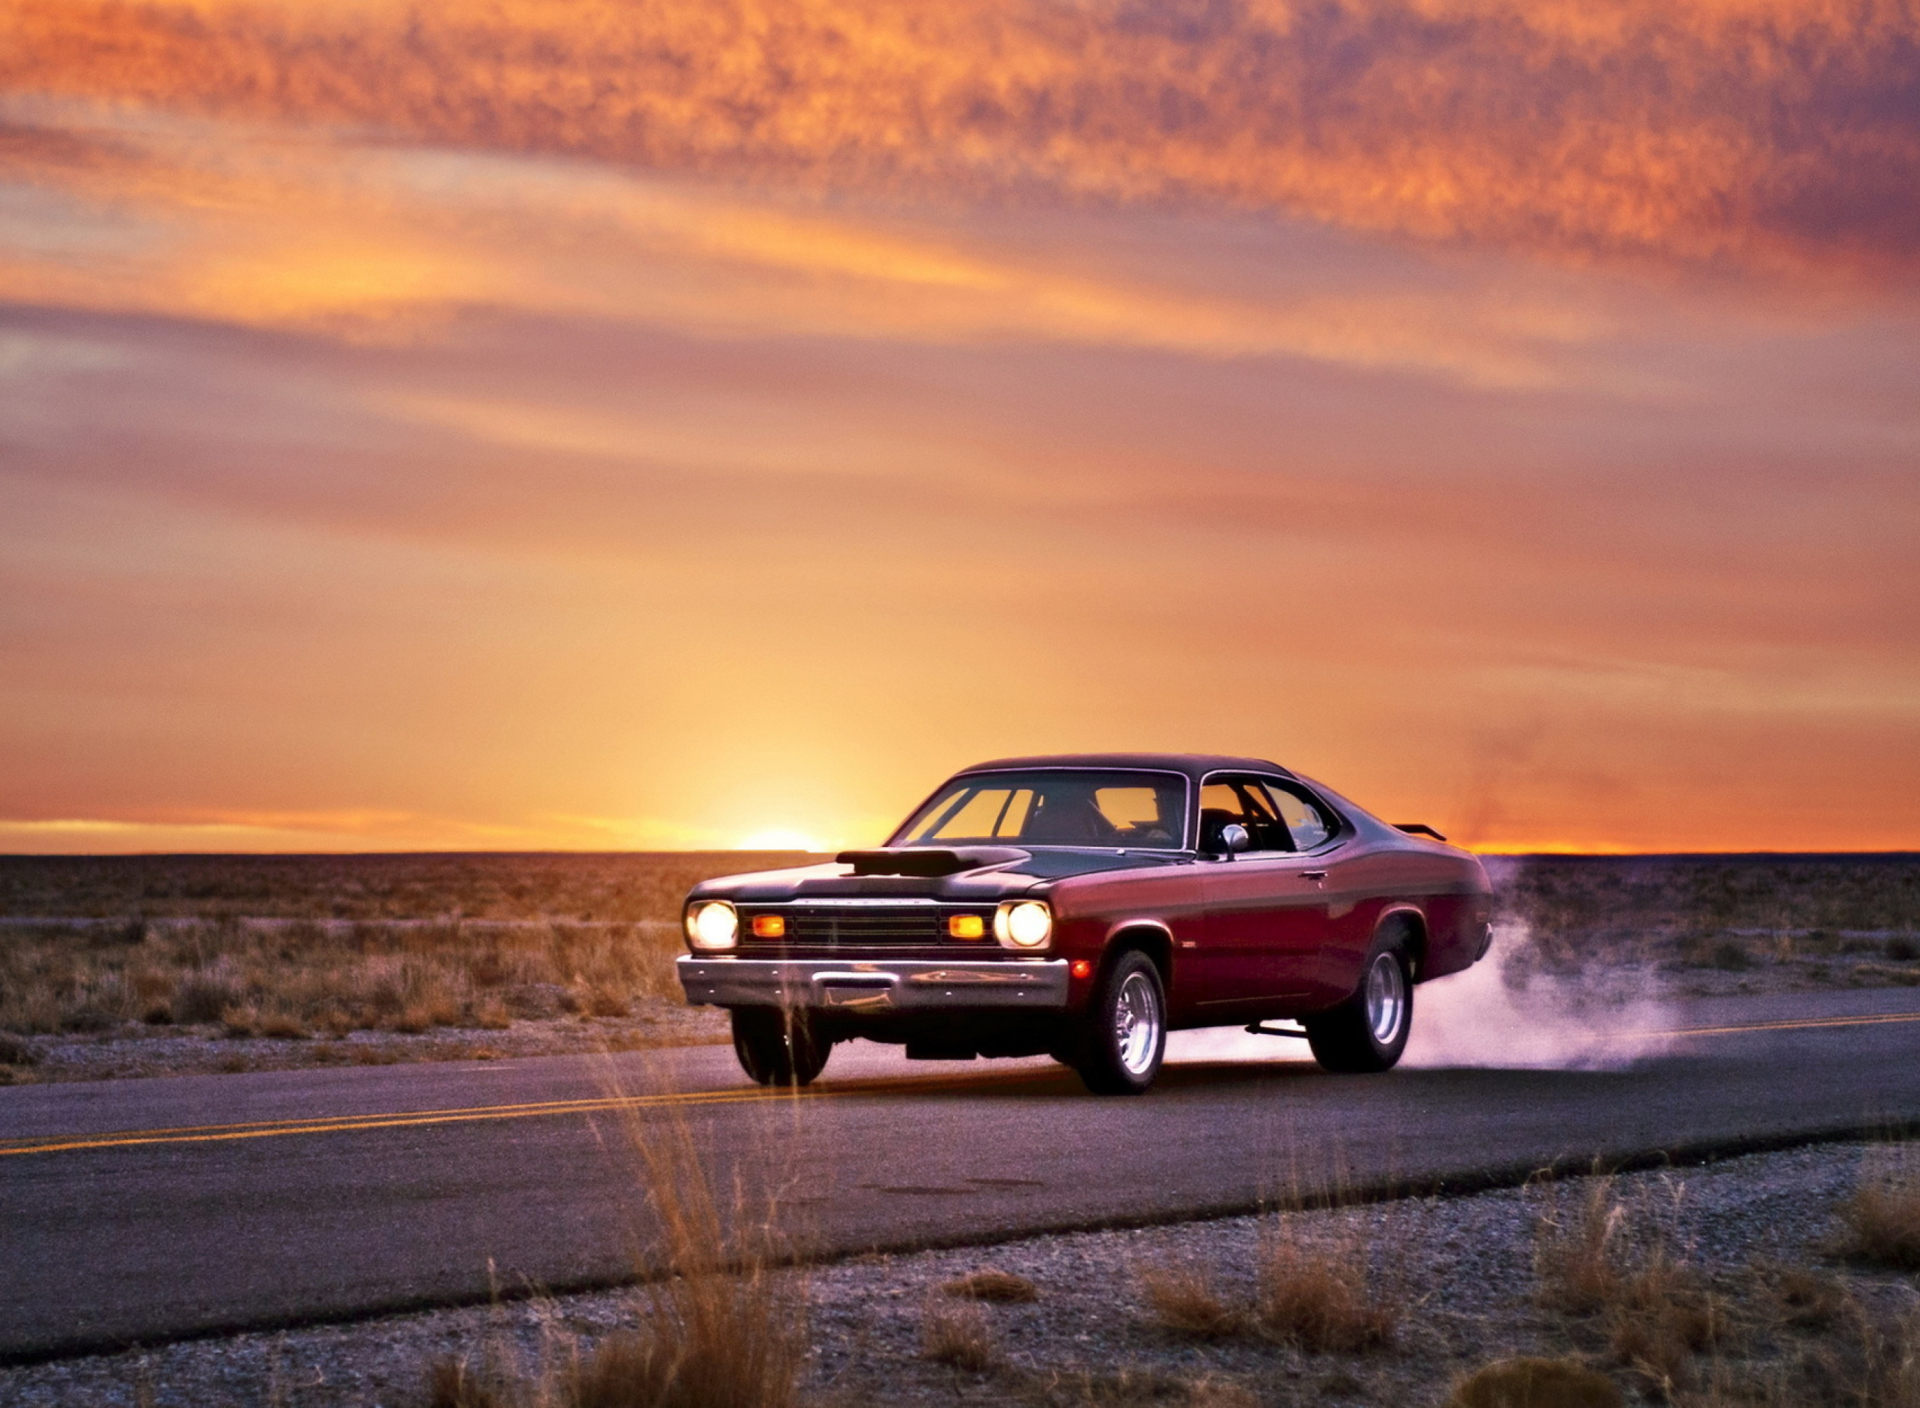 Plymouth Duster screenshot #1 1920x1408